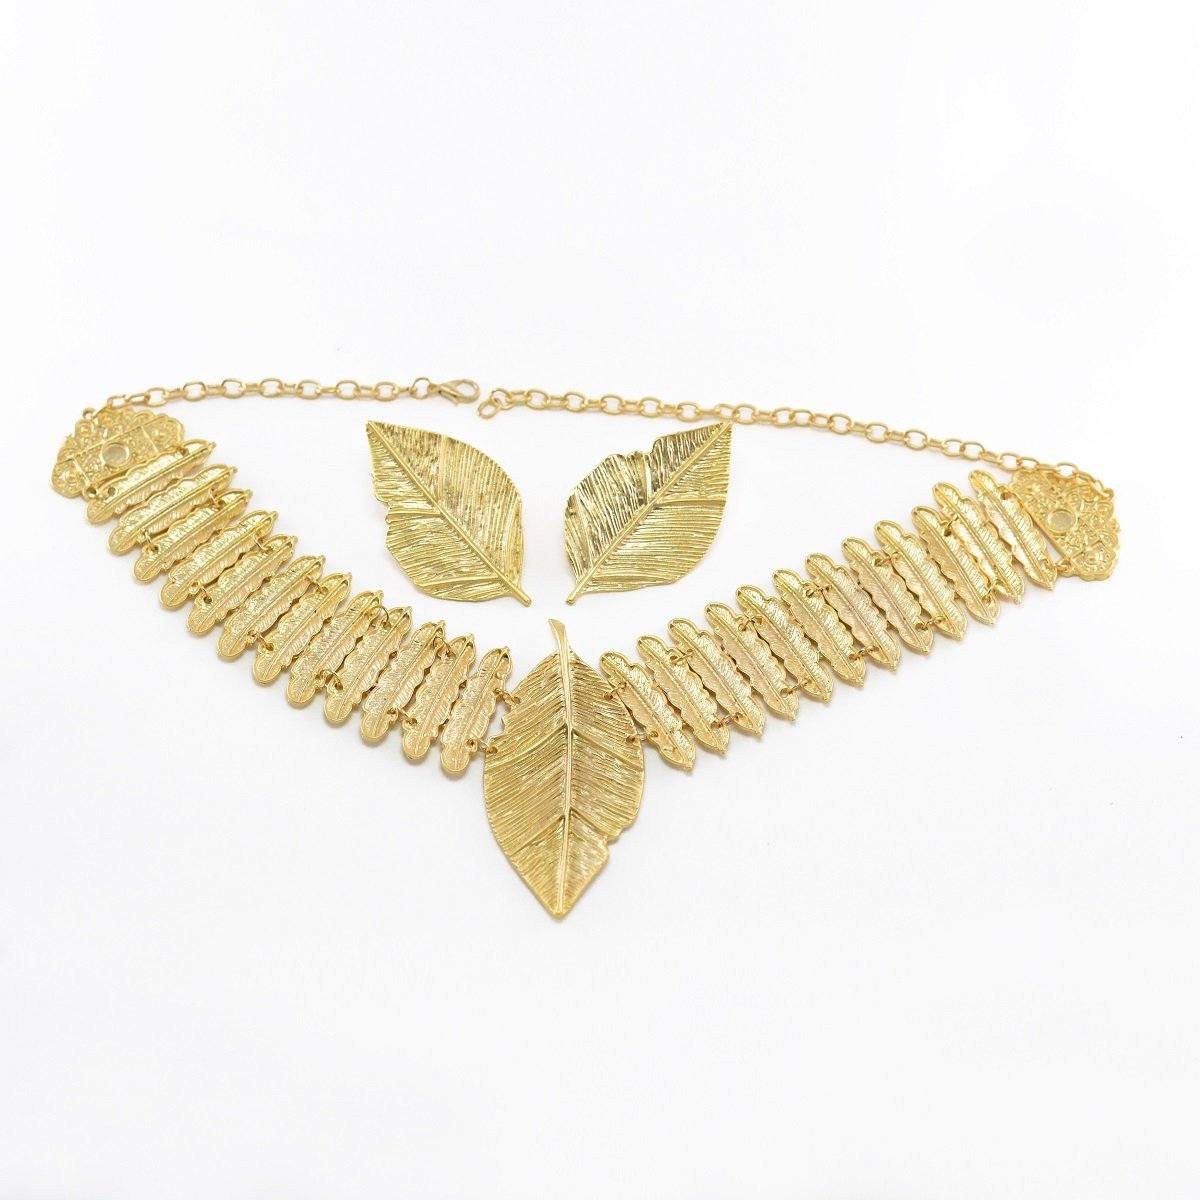 King Of Gold Necklace